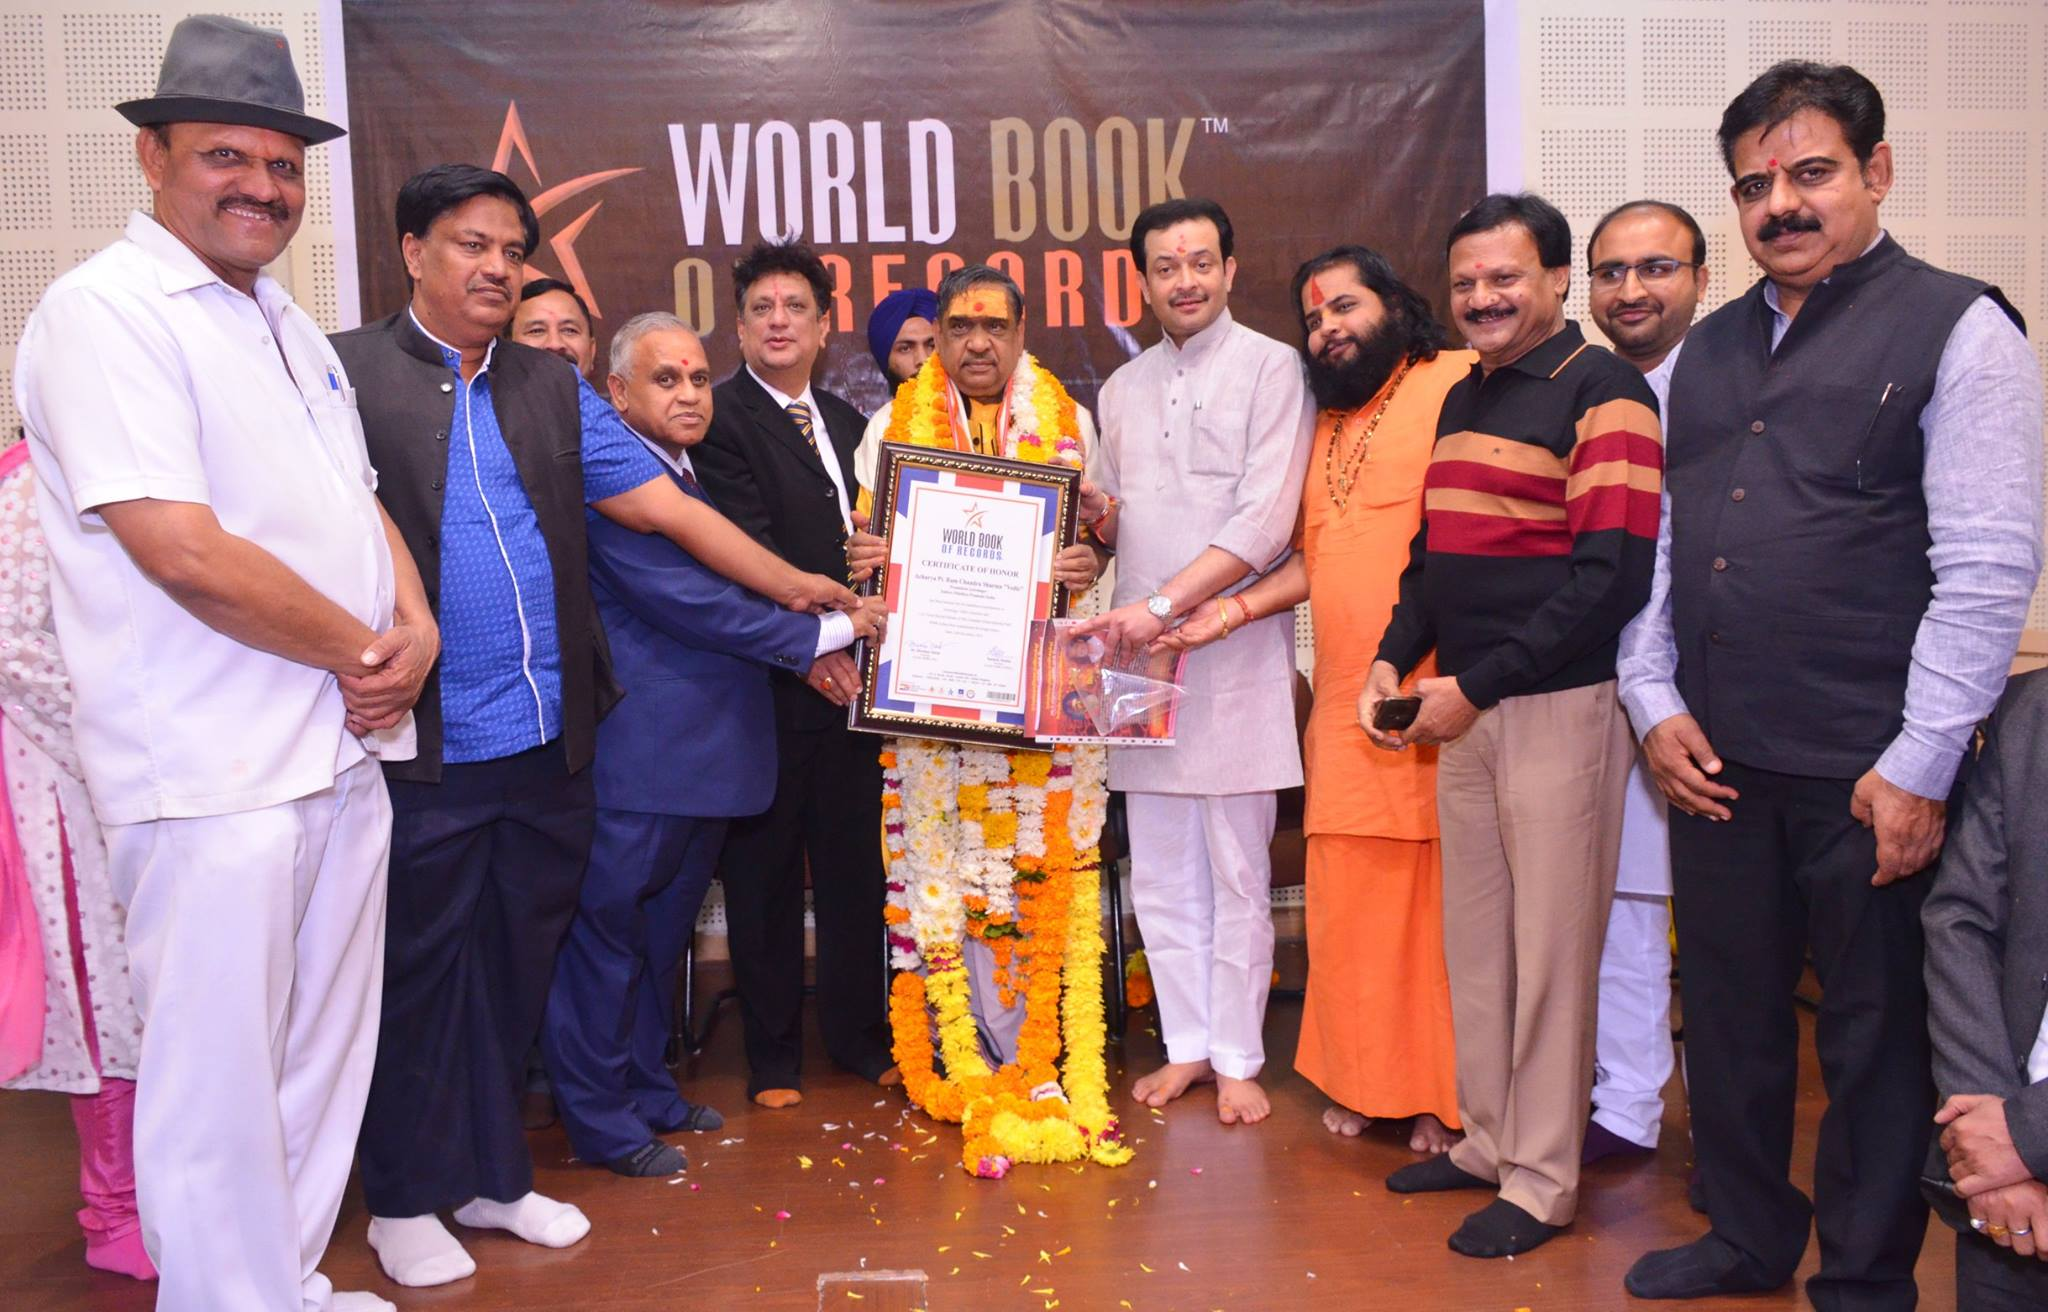 WBR honors Acharya Pt. Ram Chandra Sharma